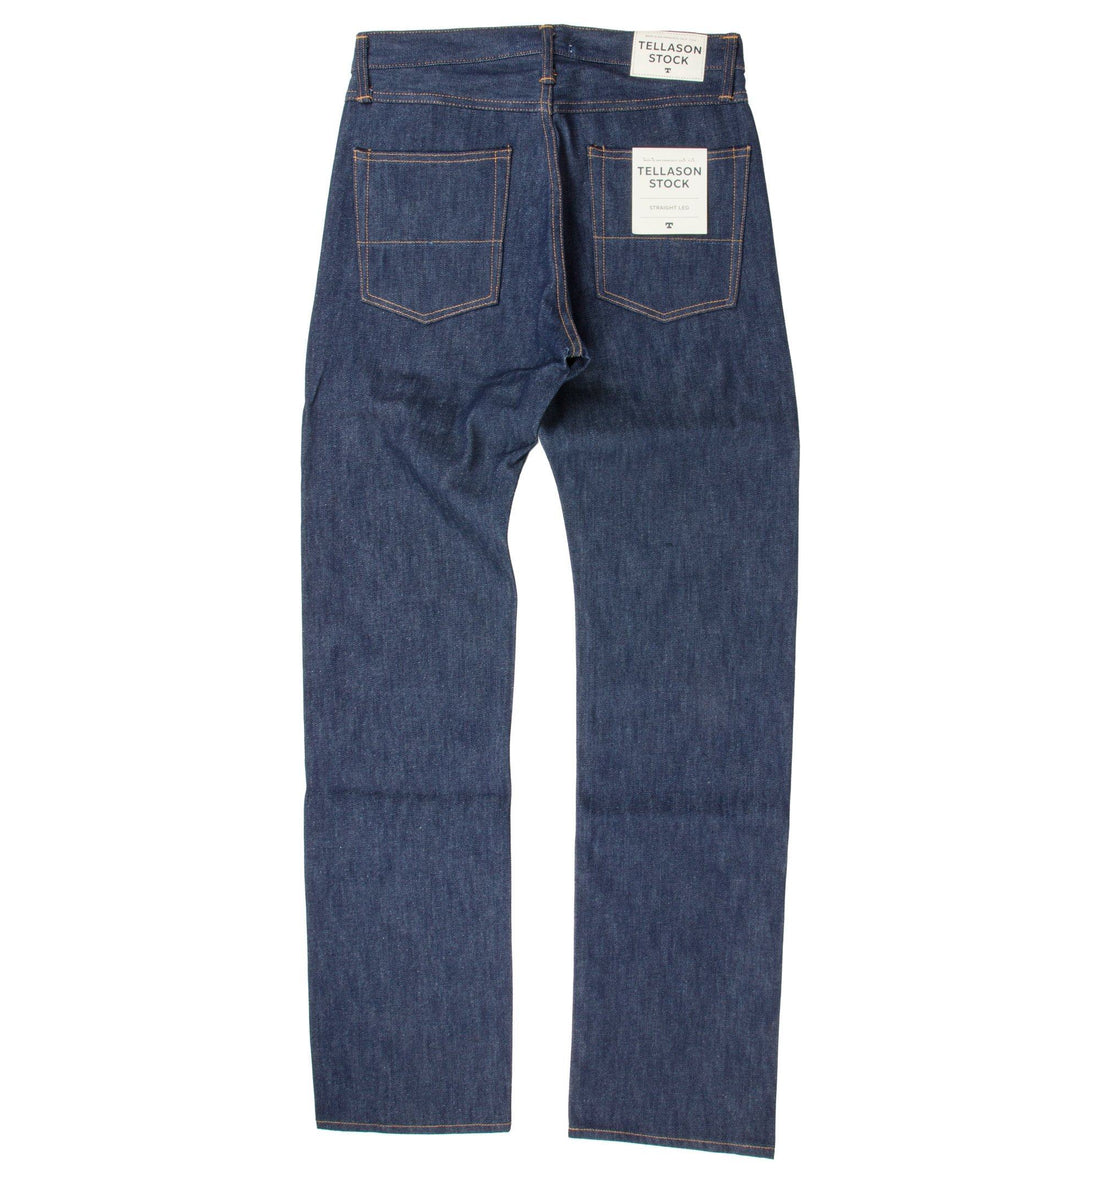 Tellason Stock Straight Leg 14 oz. Jean - Bottoms - Iron and Resin